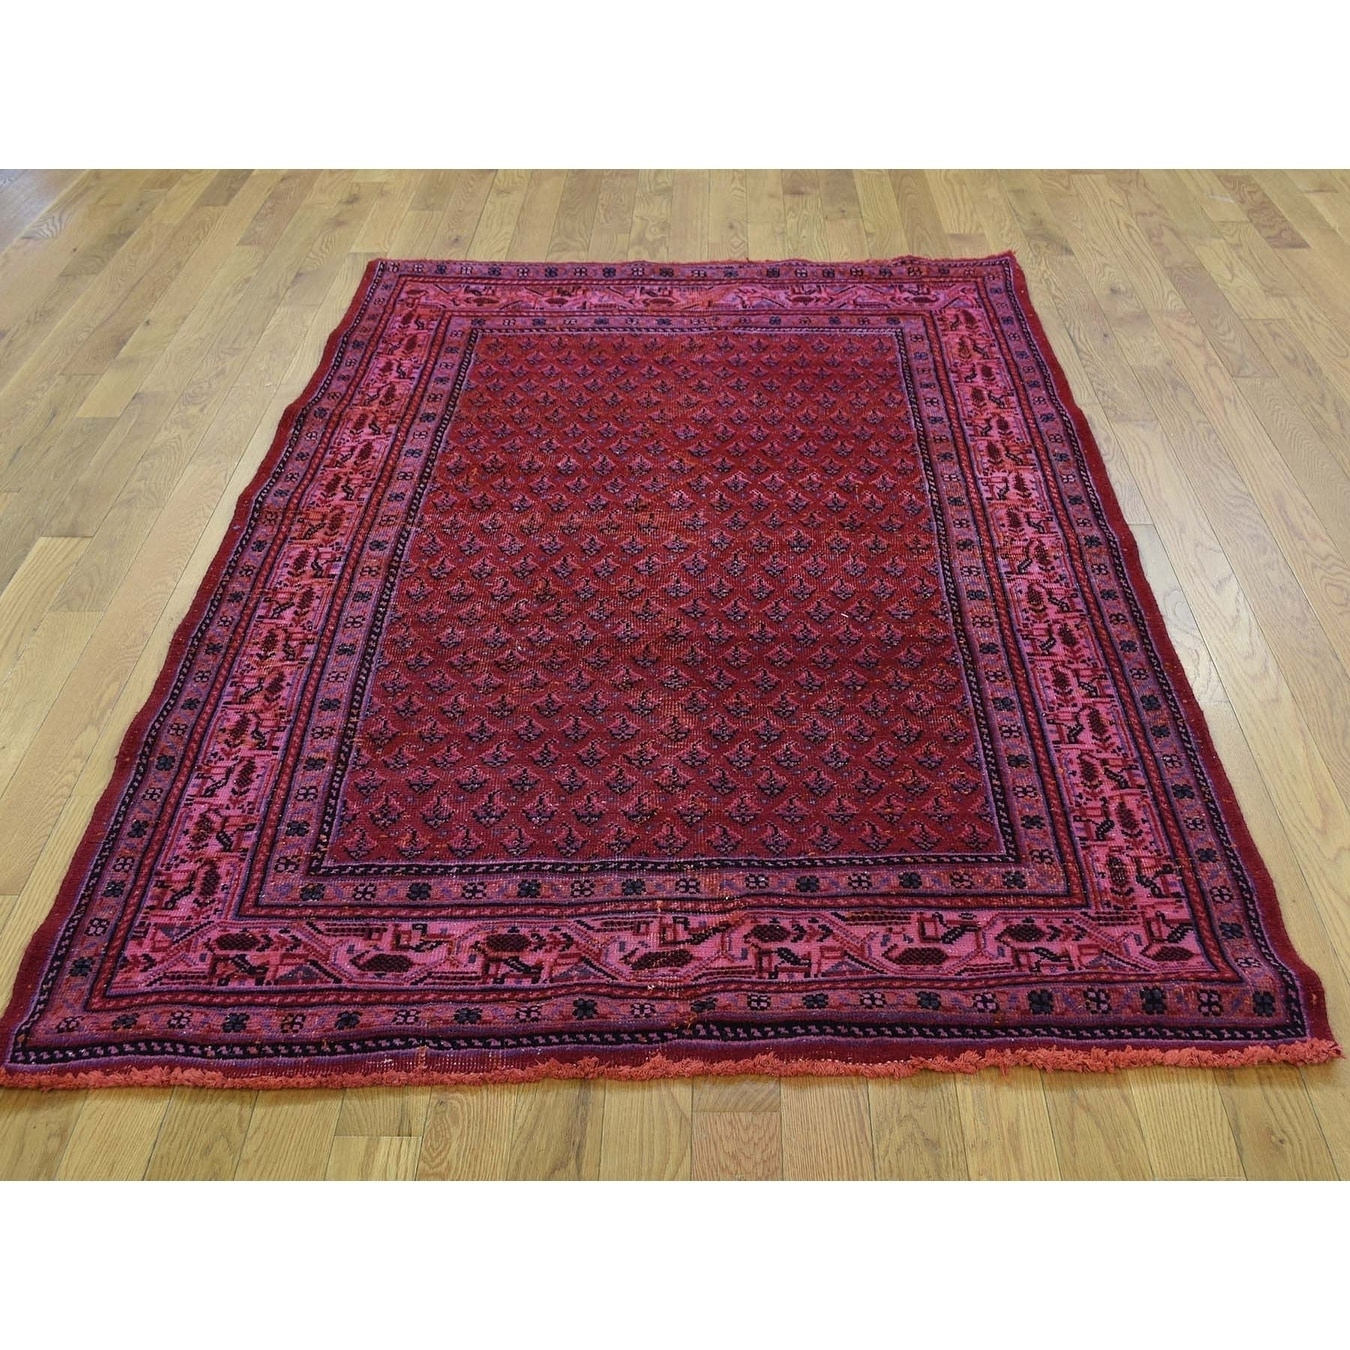 Hand Knotted Red Overdyed & Vintage with Wool Oriental Rug - 44 x 67